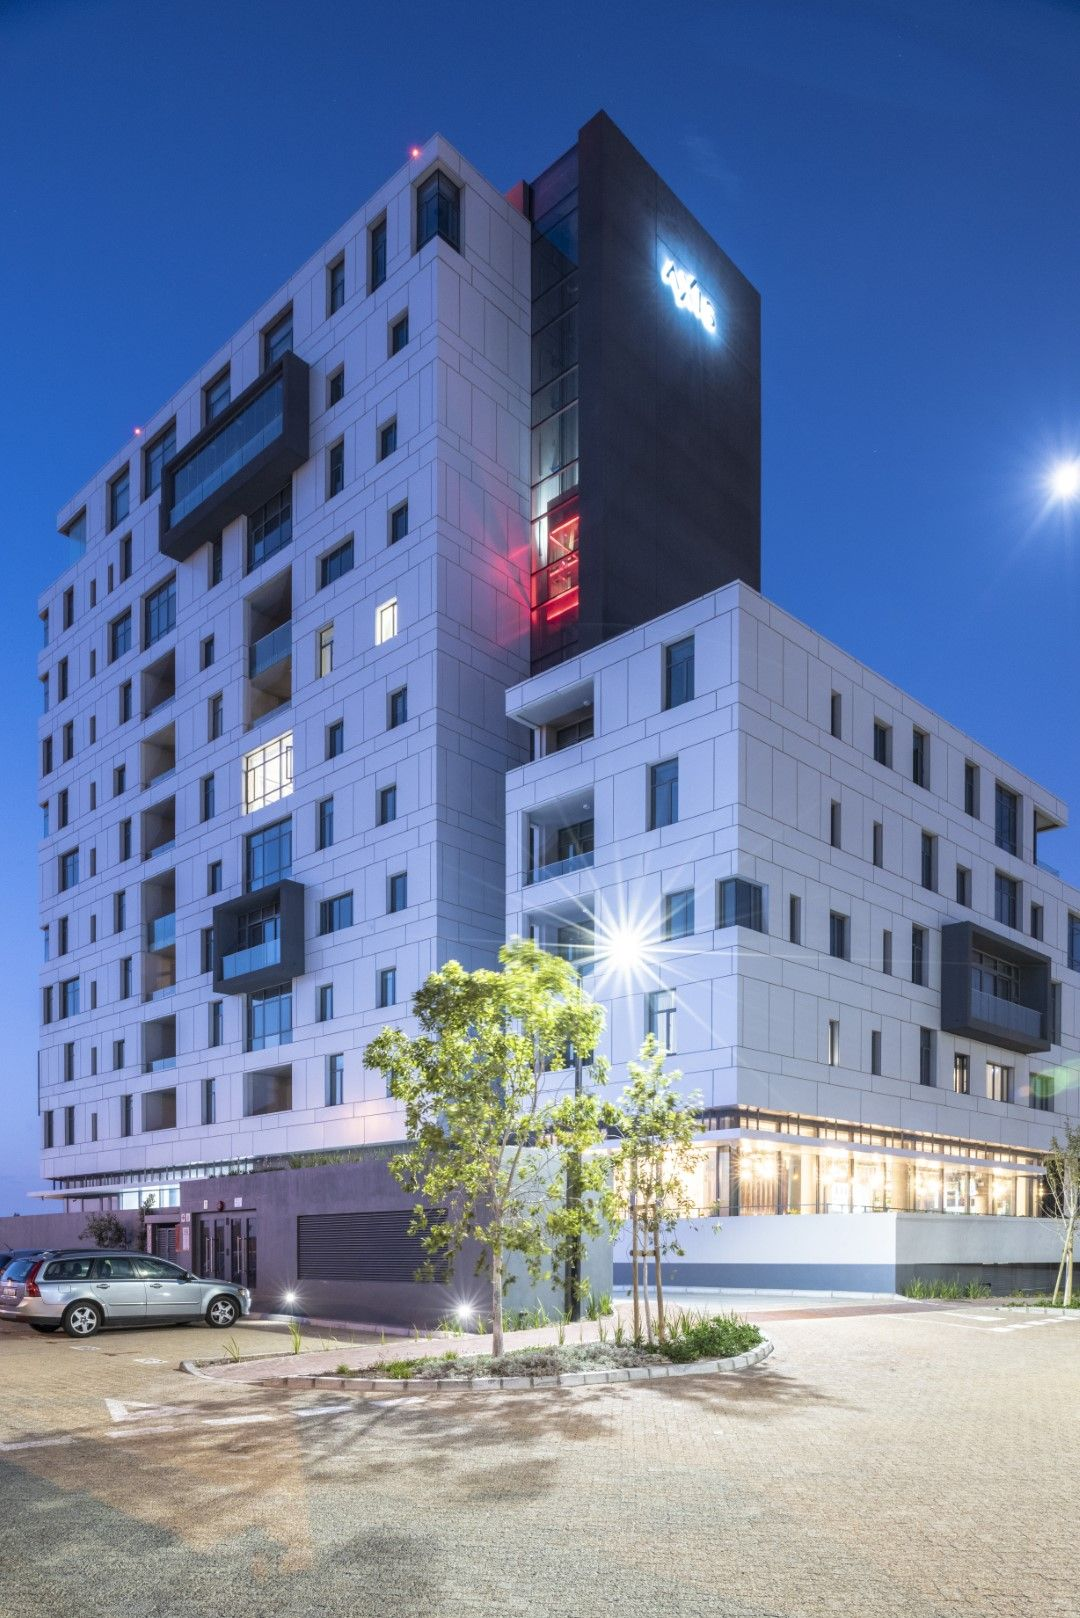 Axis Is The Latest Residential Development In Bridgeways Precinct Of Cape Town S Century City The Apartment Block Compris Building Architect Luxury Apartments